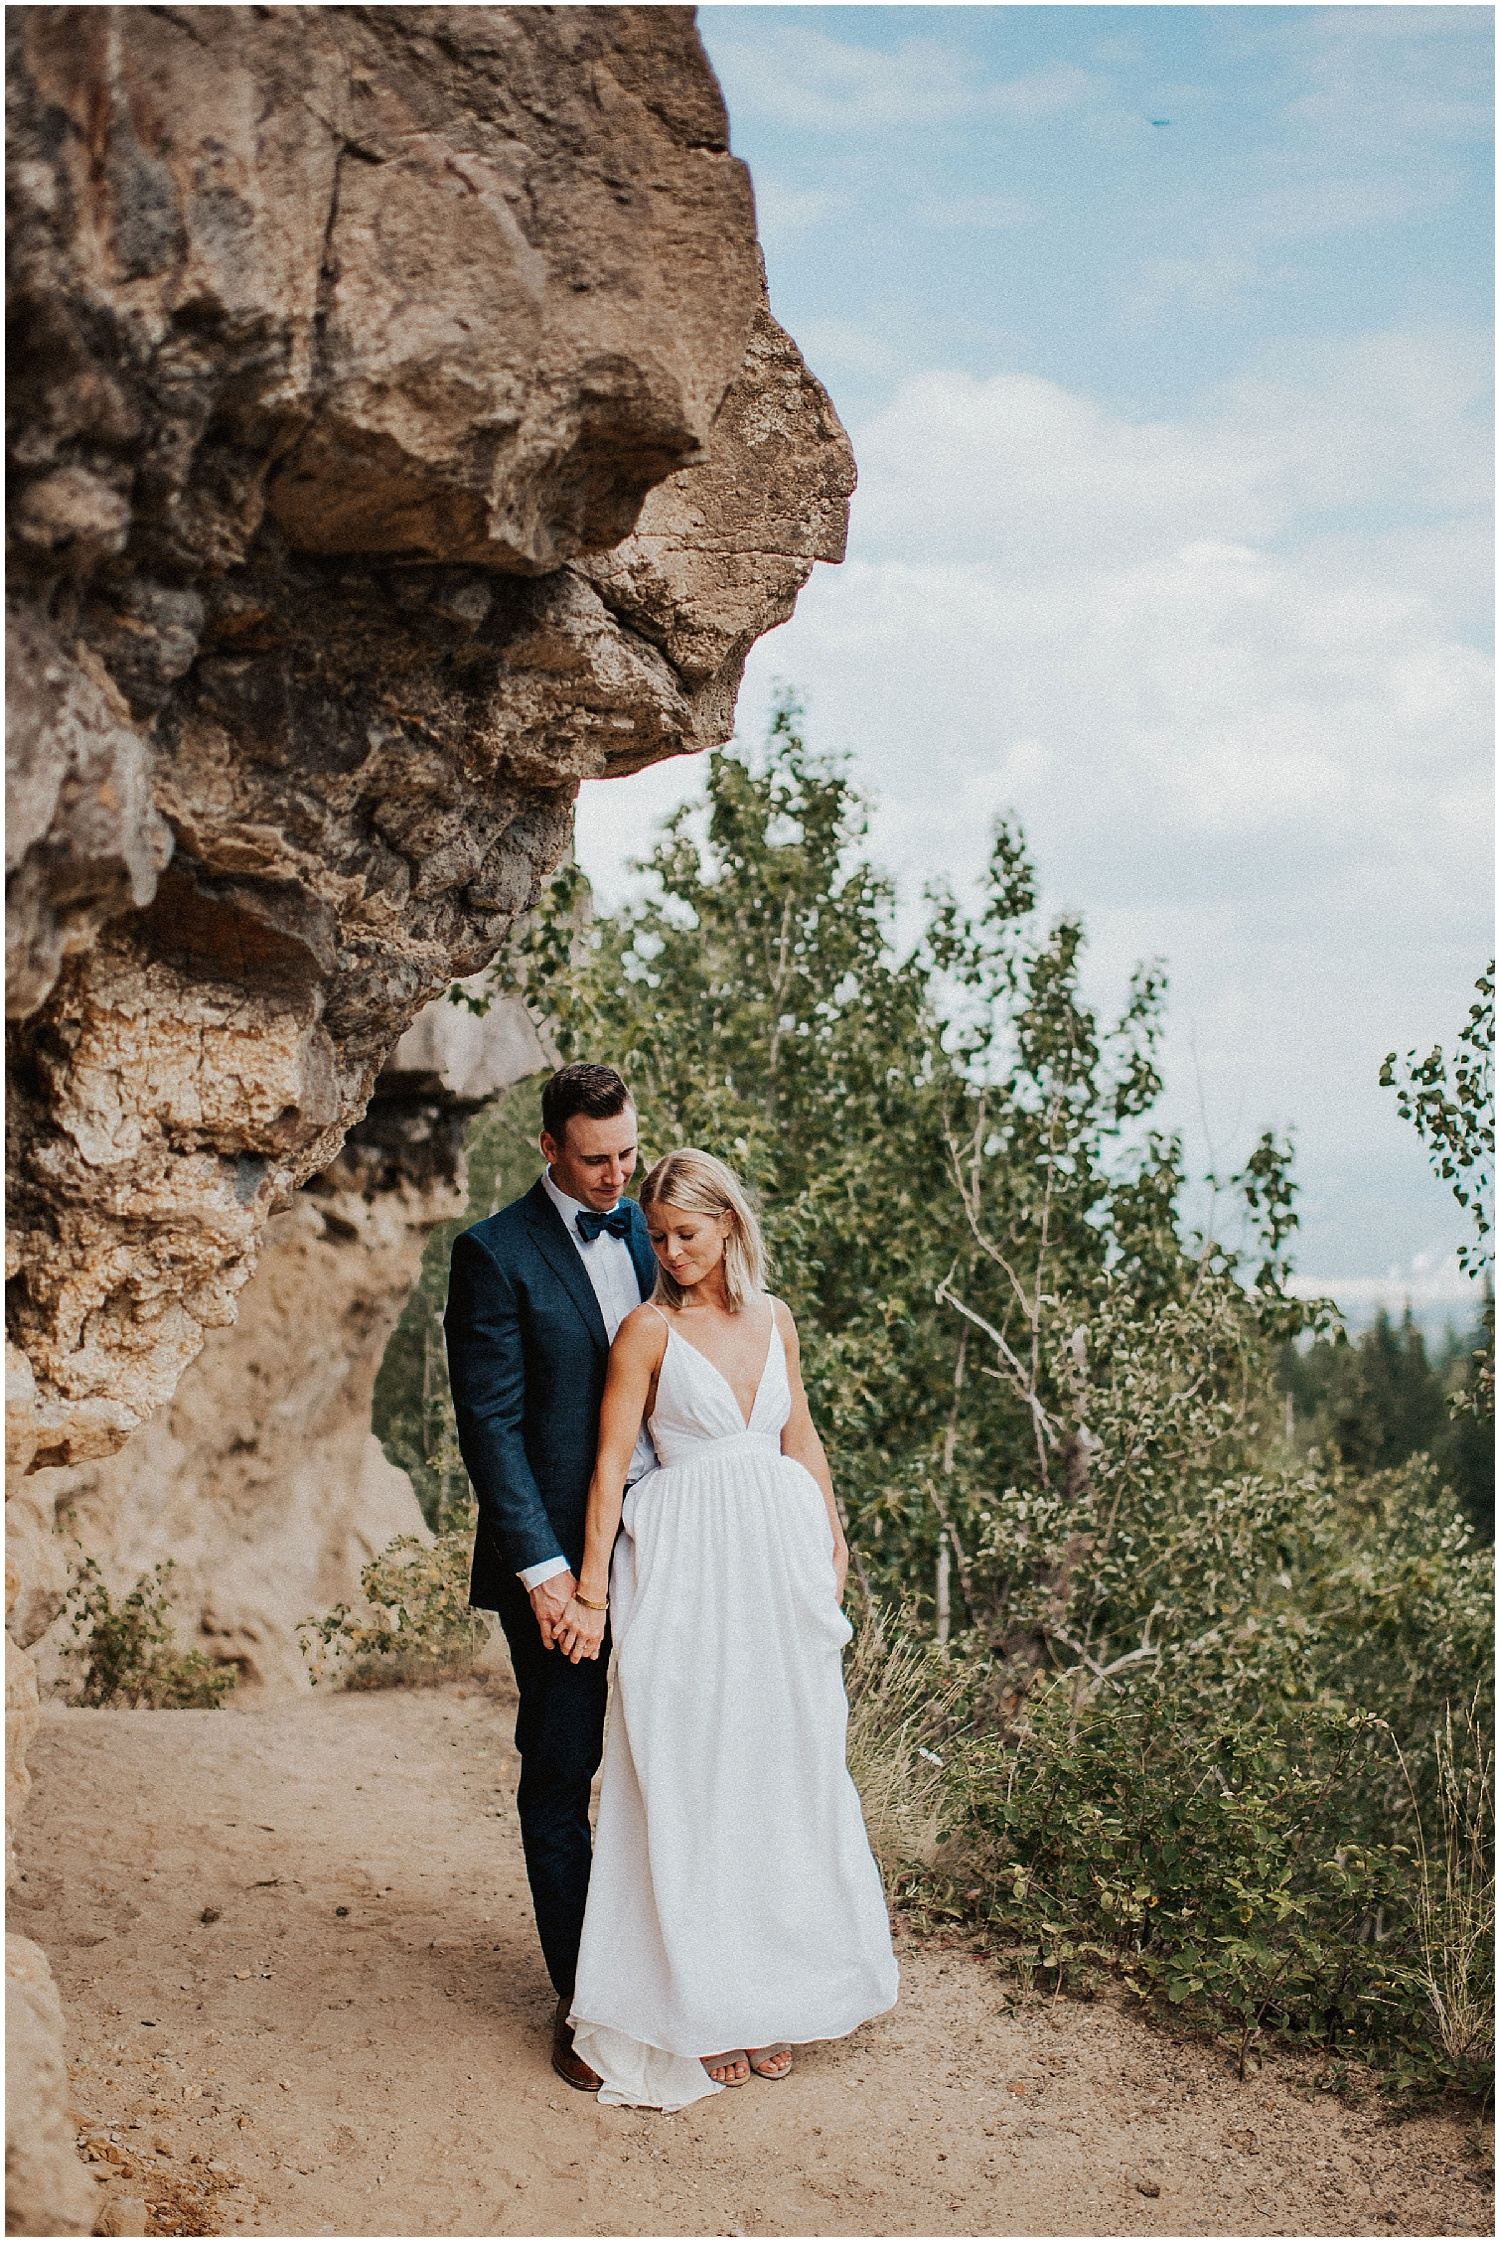 bc wedding photographer quesnel couple popping champagne fun photography pinnacles park lookout point elopement norther bc